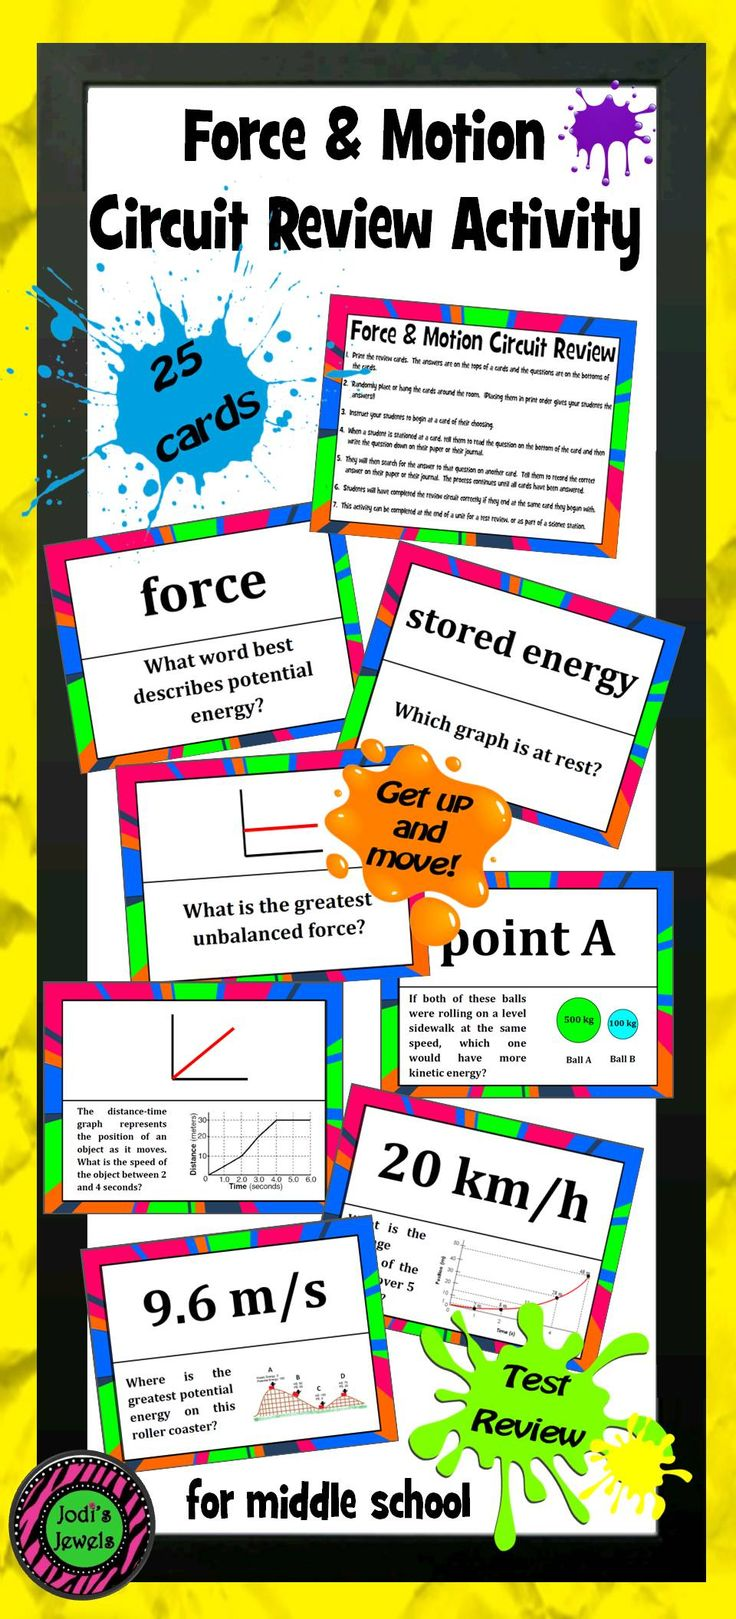 Force & Motion Circuit Review Activity Basic physics